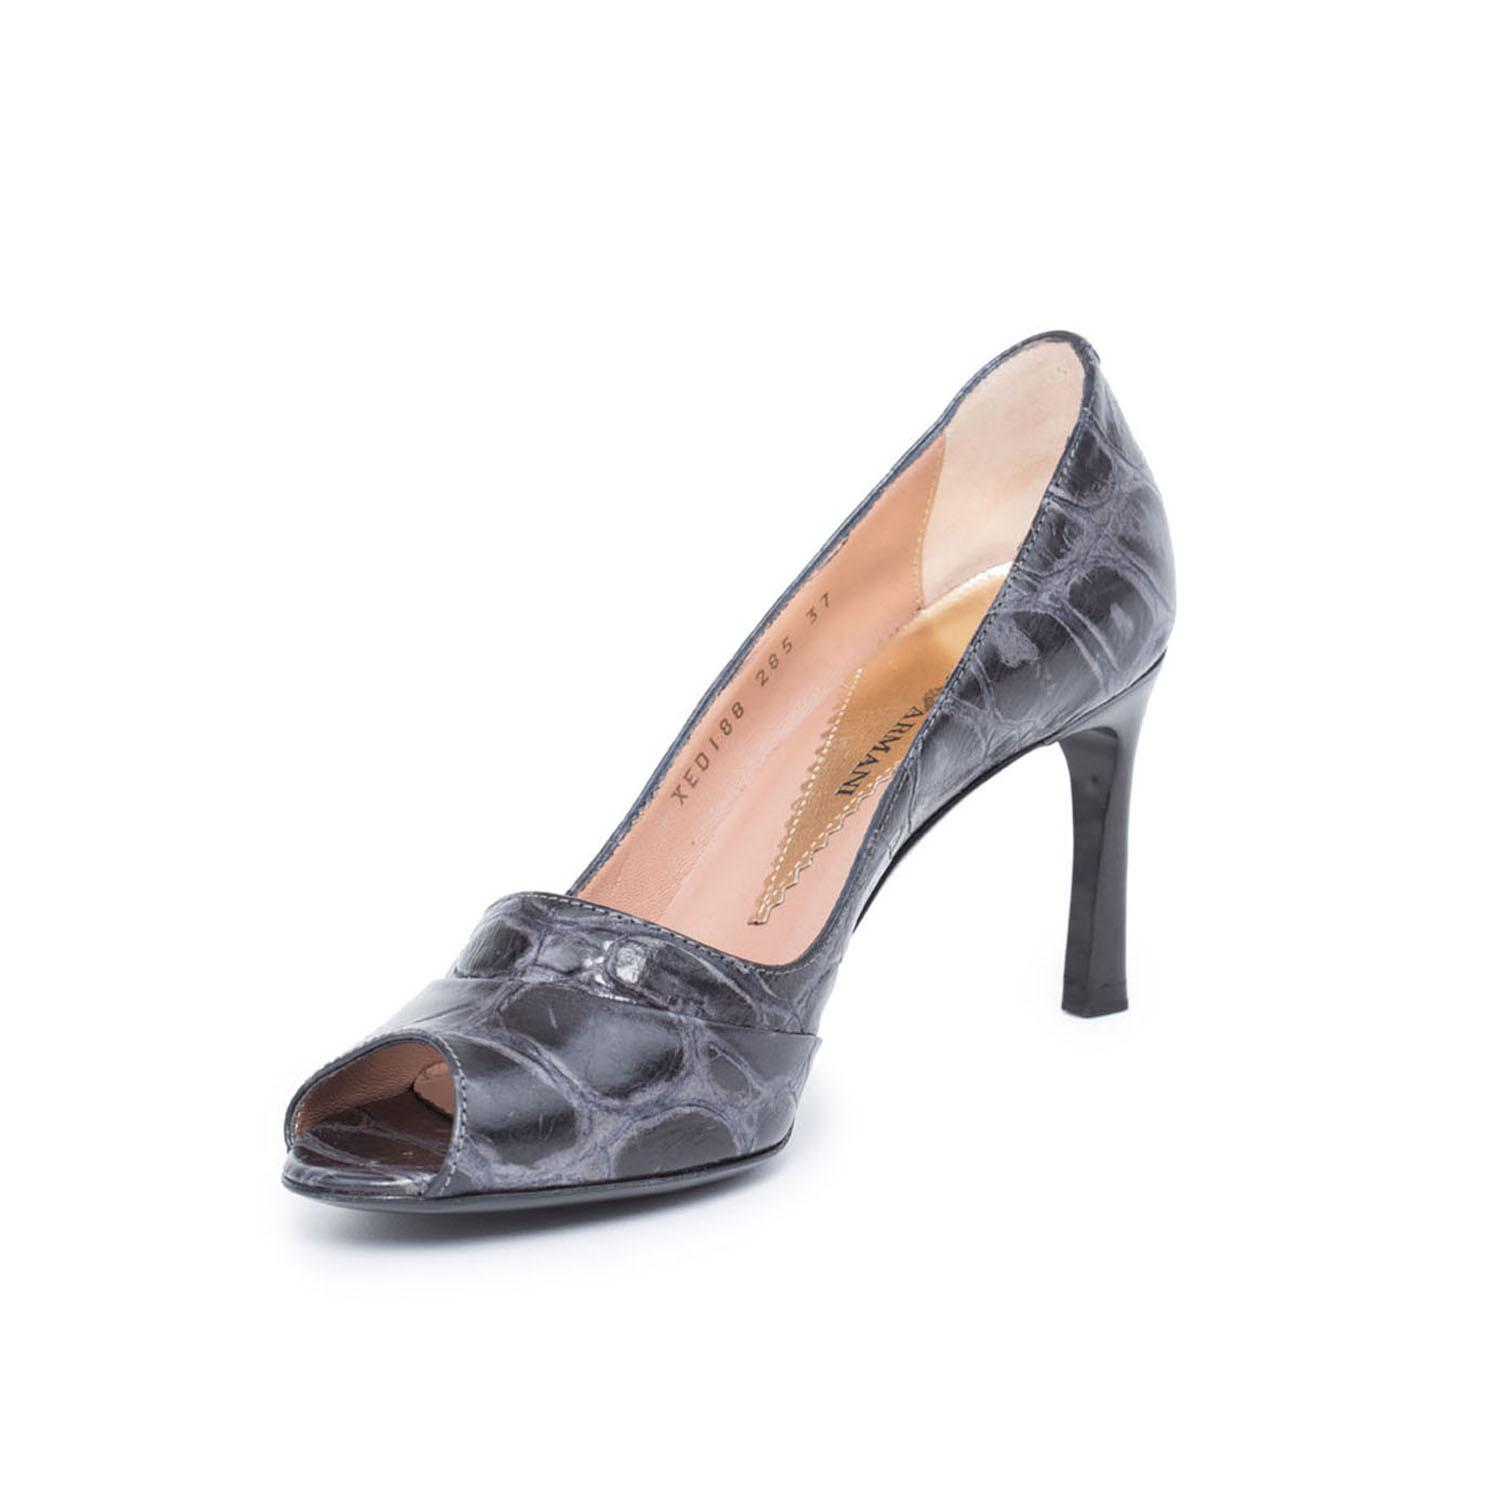 Emporio Armani Embossed Pointed-Toe Pumps clearance 2014 unisex with mastercard online buy cheap looking for sale browse clearance with mastercard Tlh36EOO